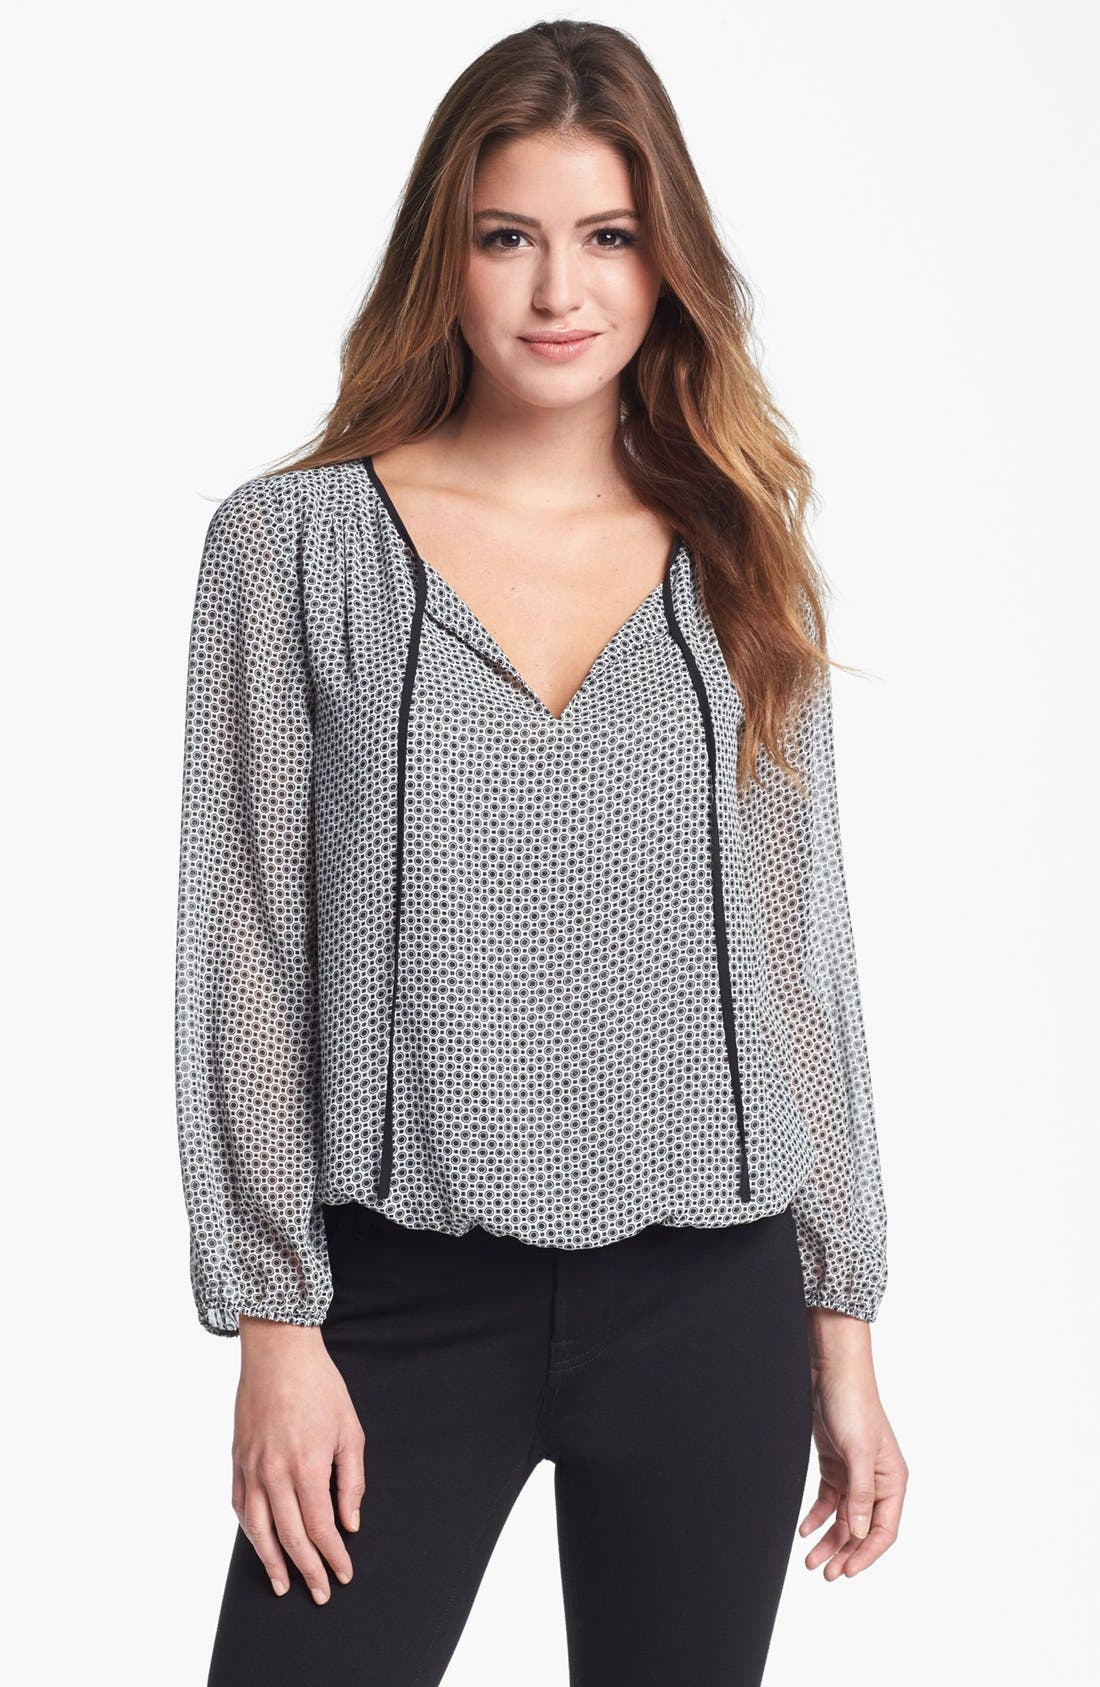 Alternate Image 1 Selected - Vince Camuto Print Peasant Top (Nordstrom Exclusive)